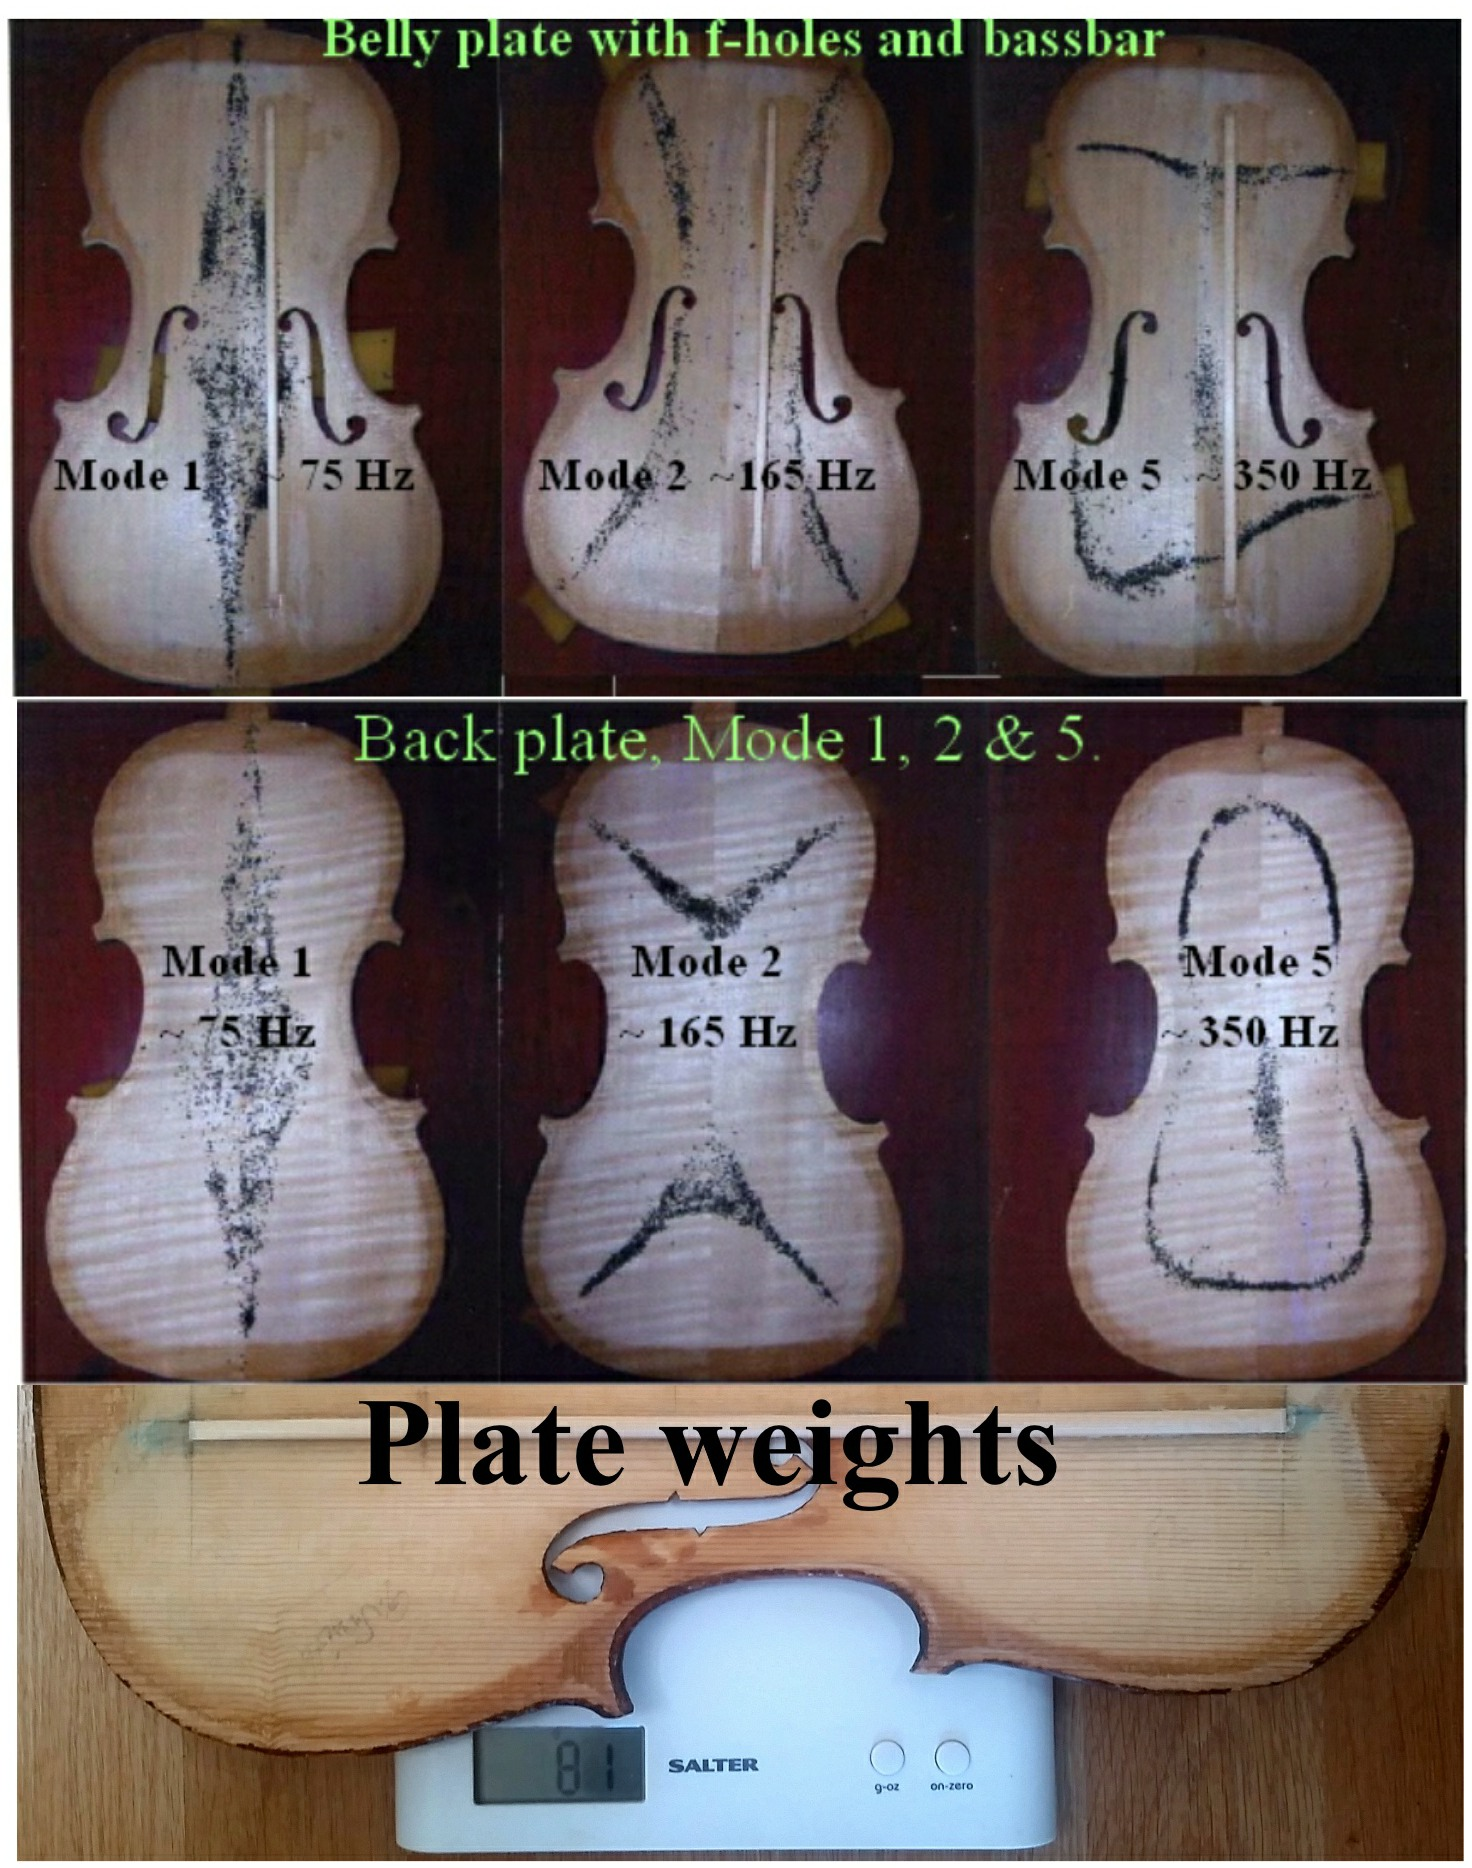 Modes & tuning plates